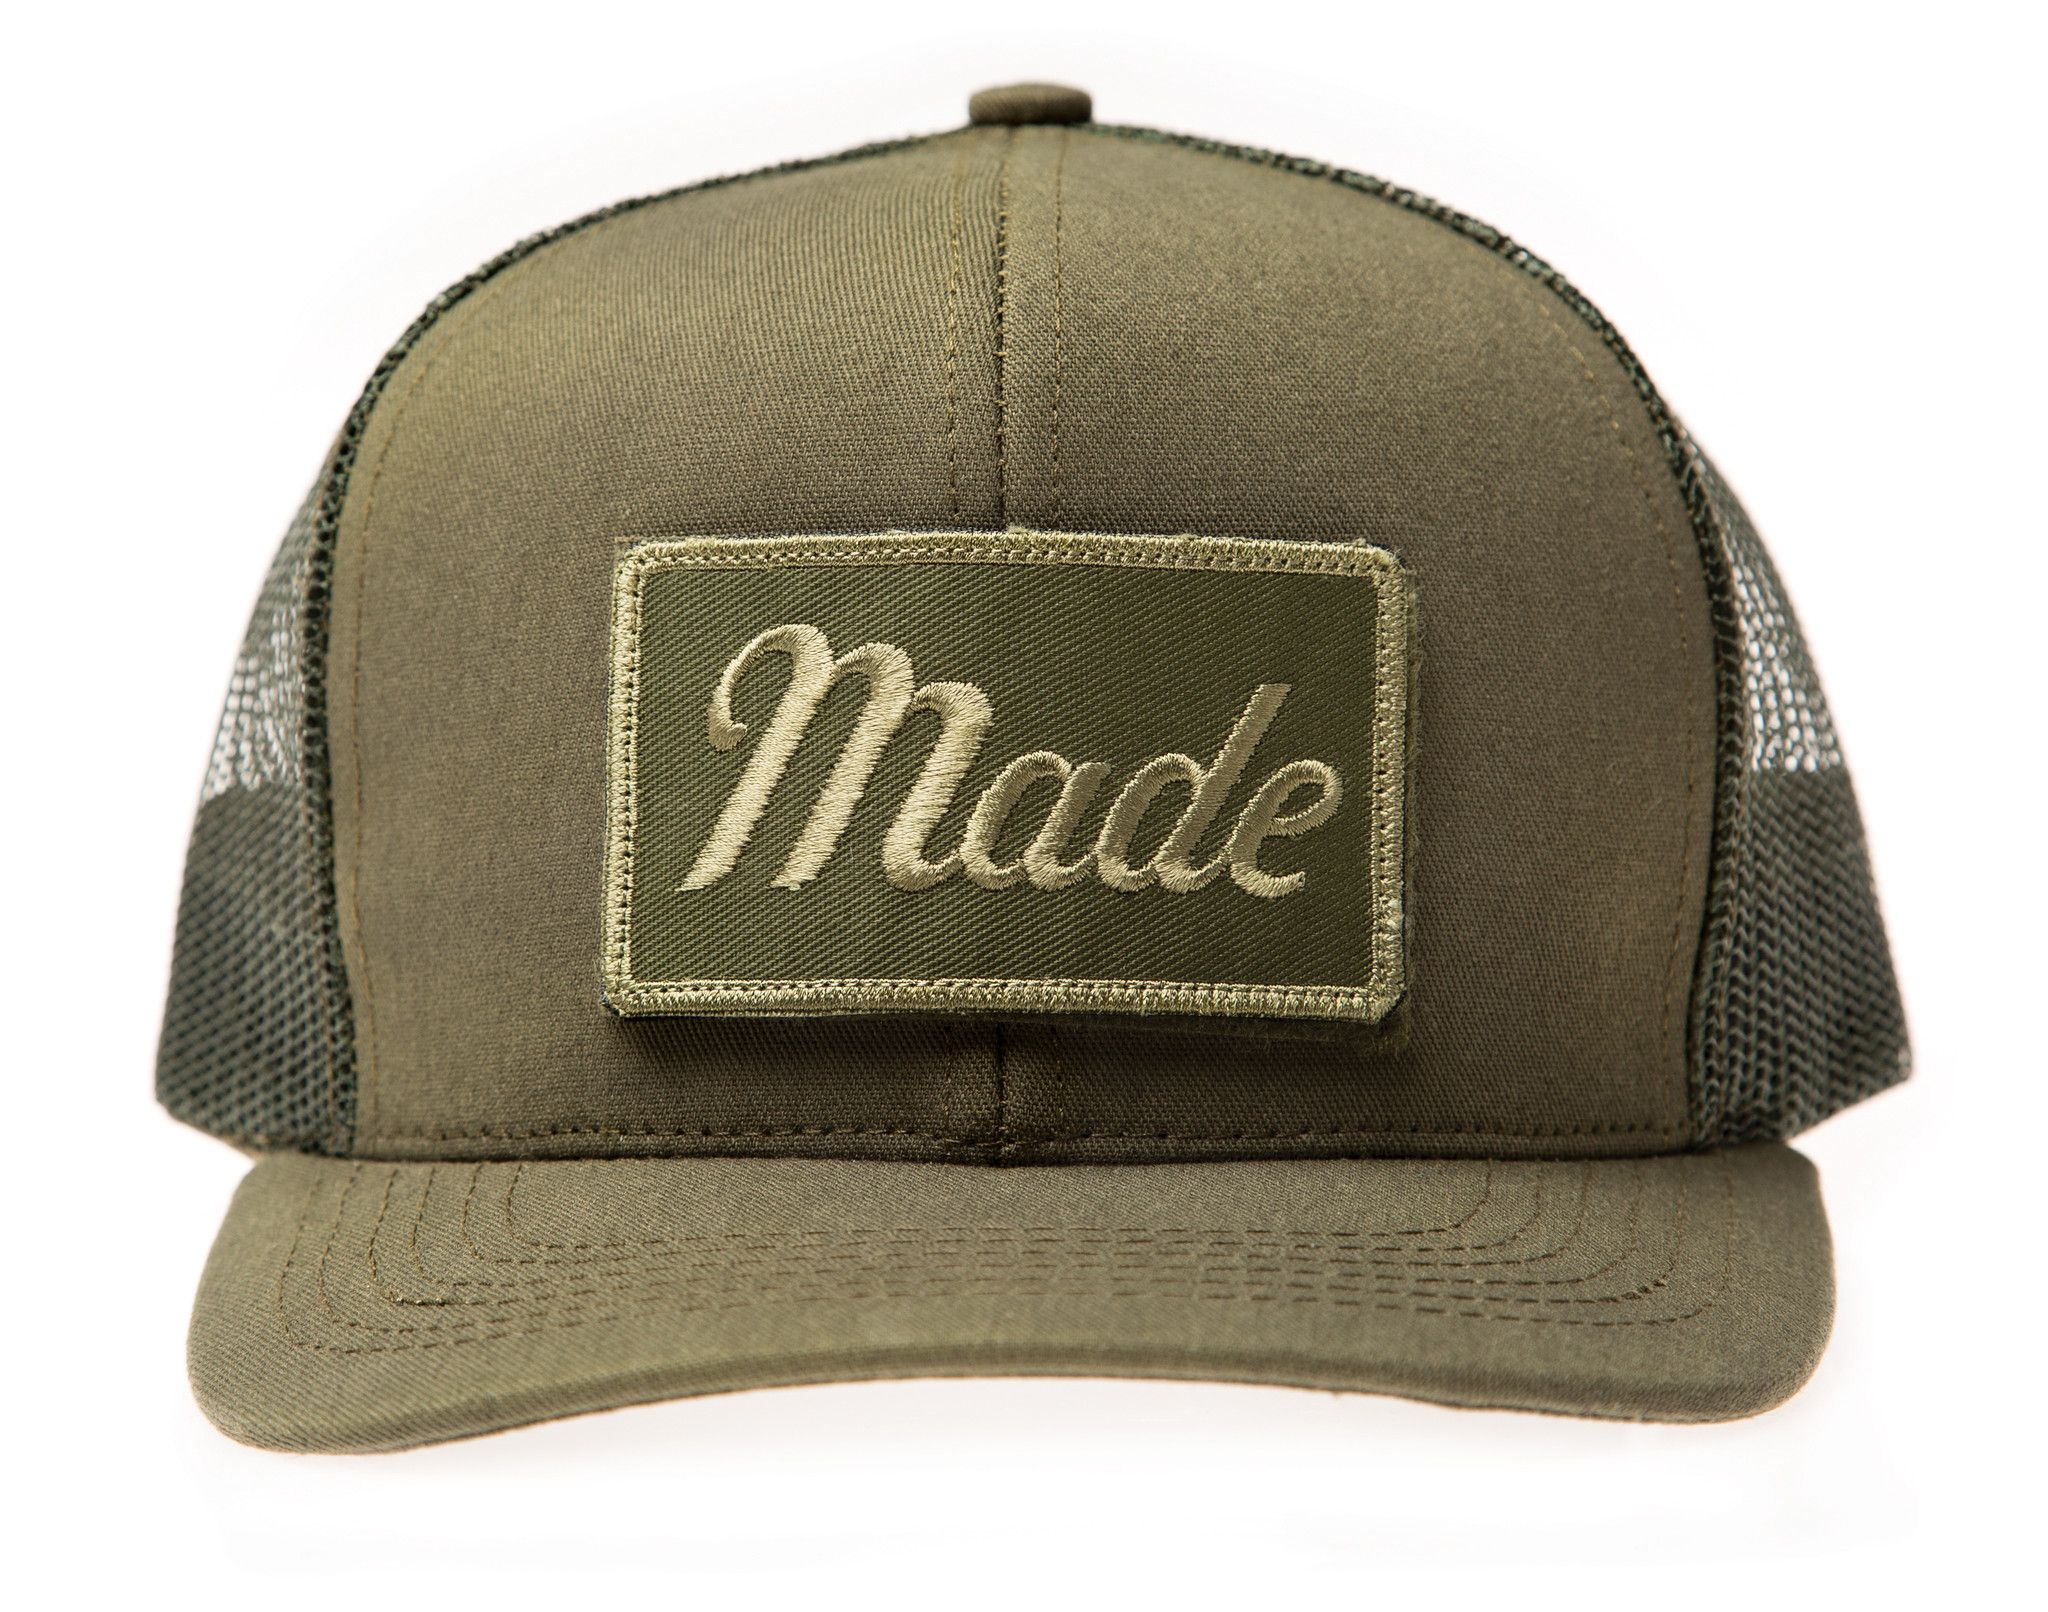 Army Green Trucker Hat (with Velcro patch) in 2019  57ddc6559d6